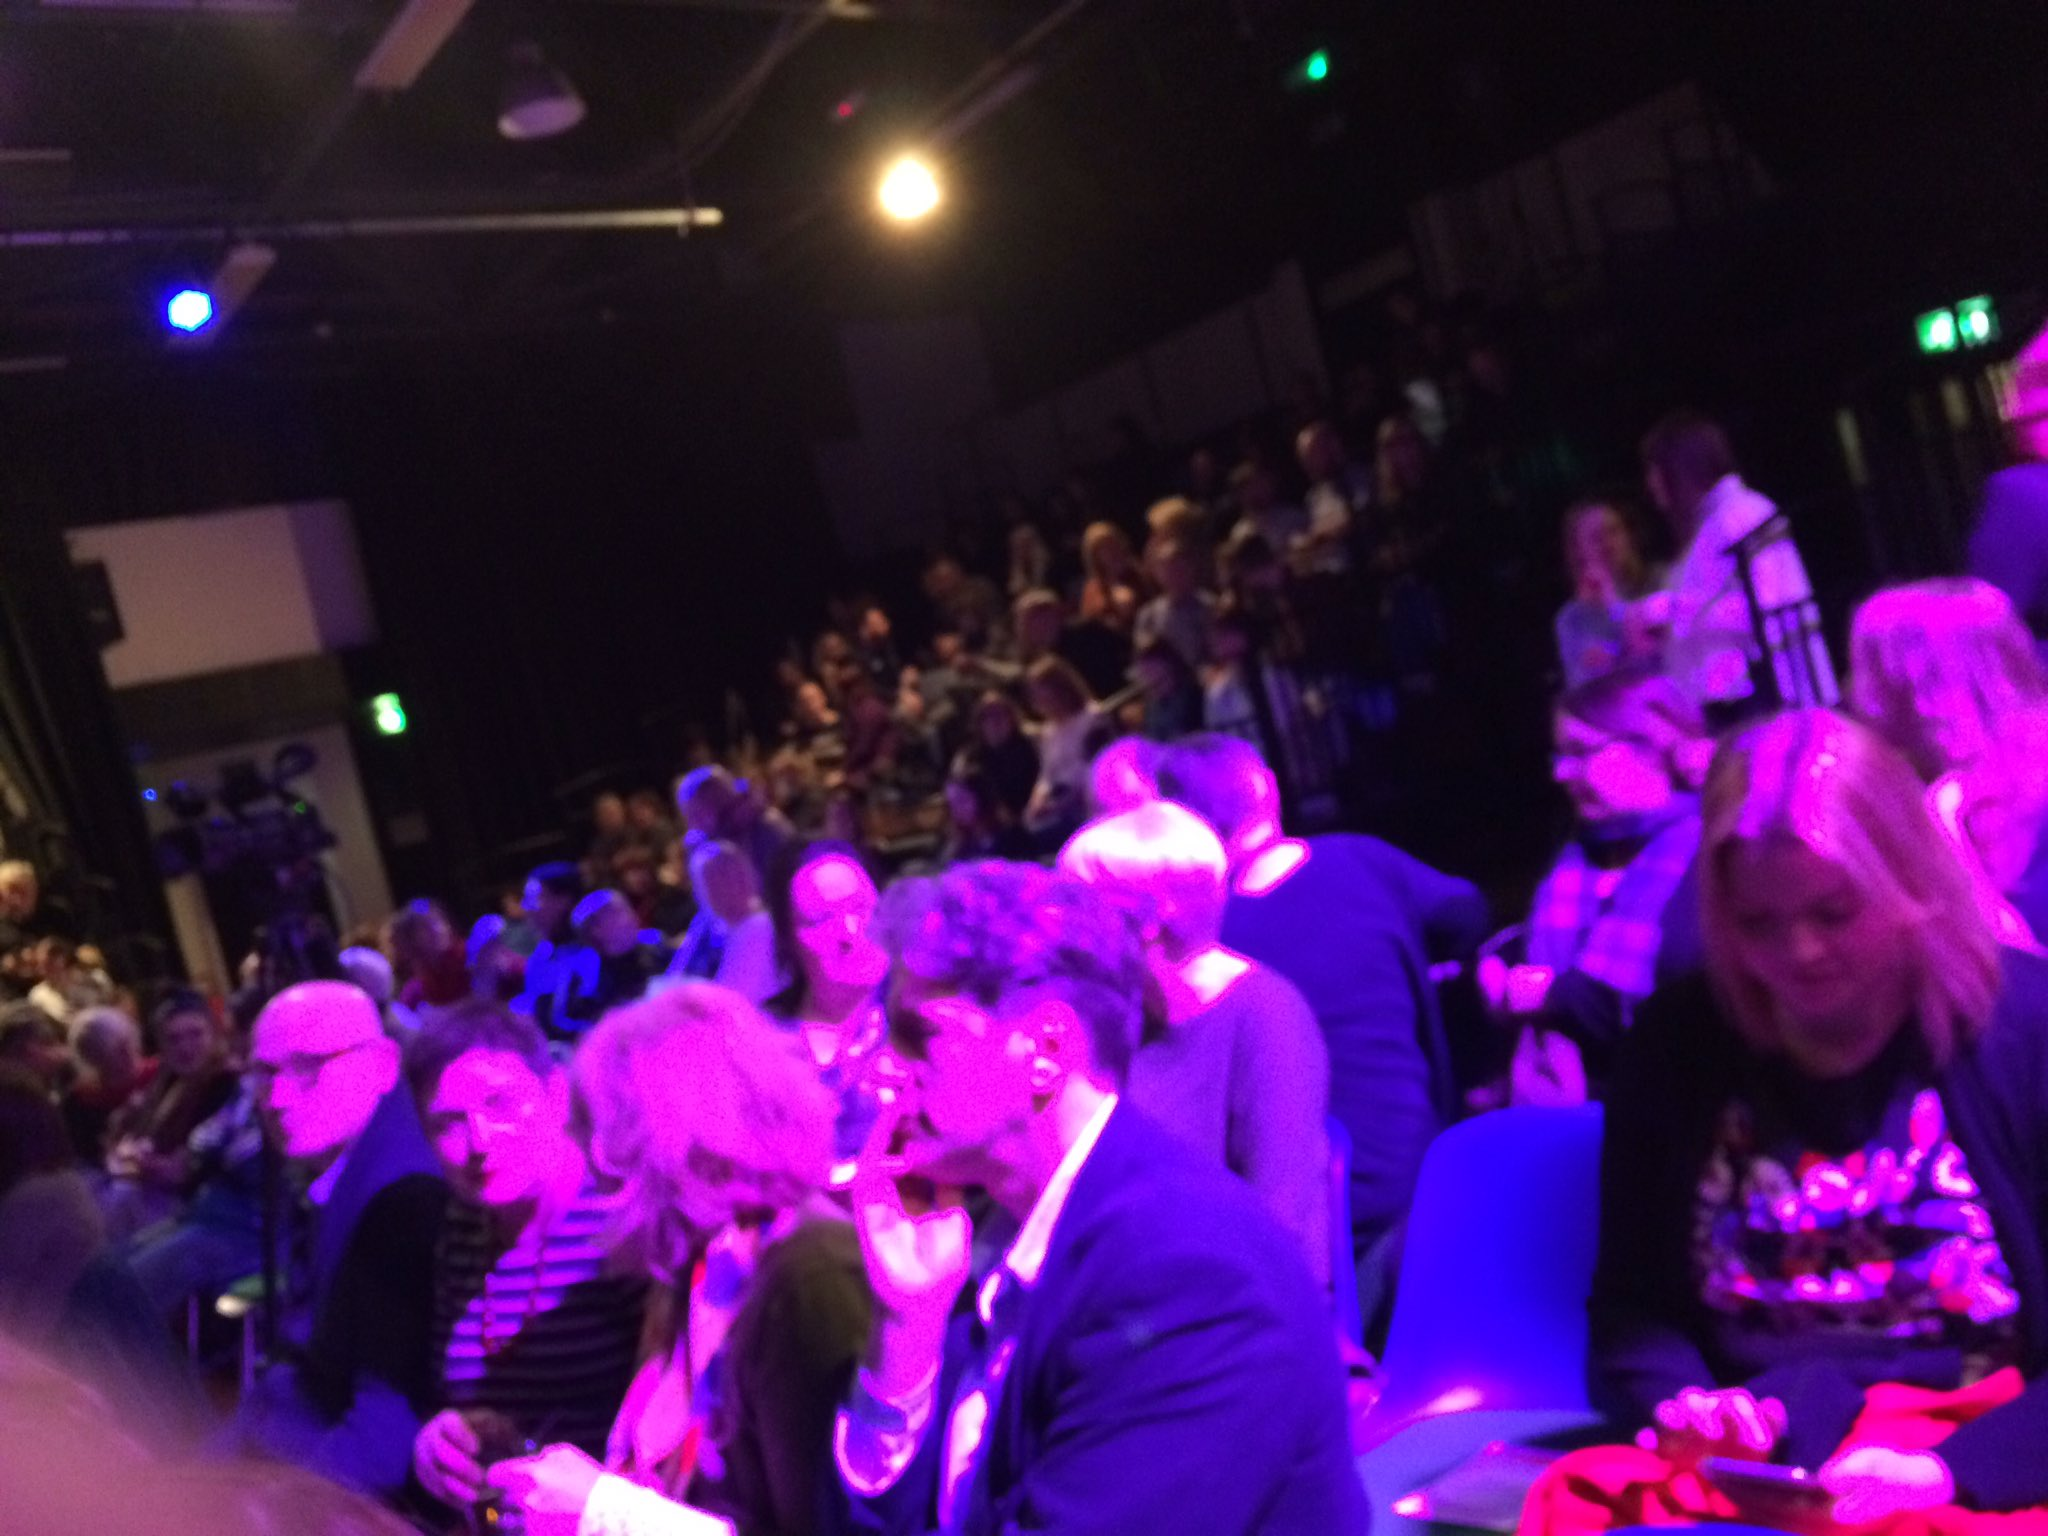 Another capacity turnout for Dundee's #PKN_DND https://t.co/Iwuvk1JPeT